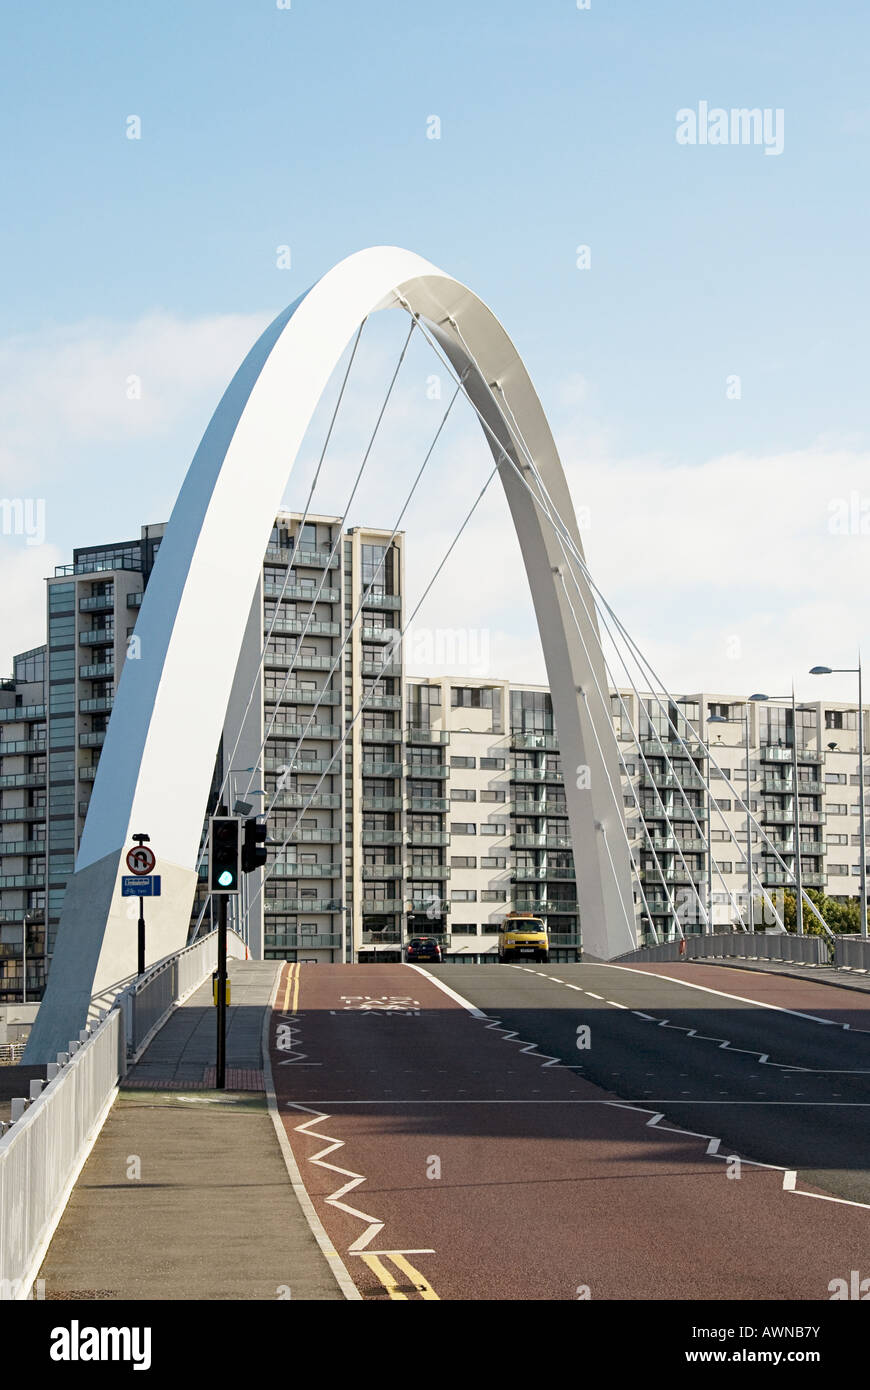 Clyde arc glasgow - Stock Image